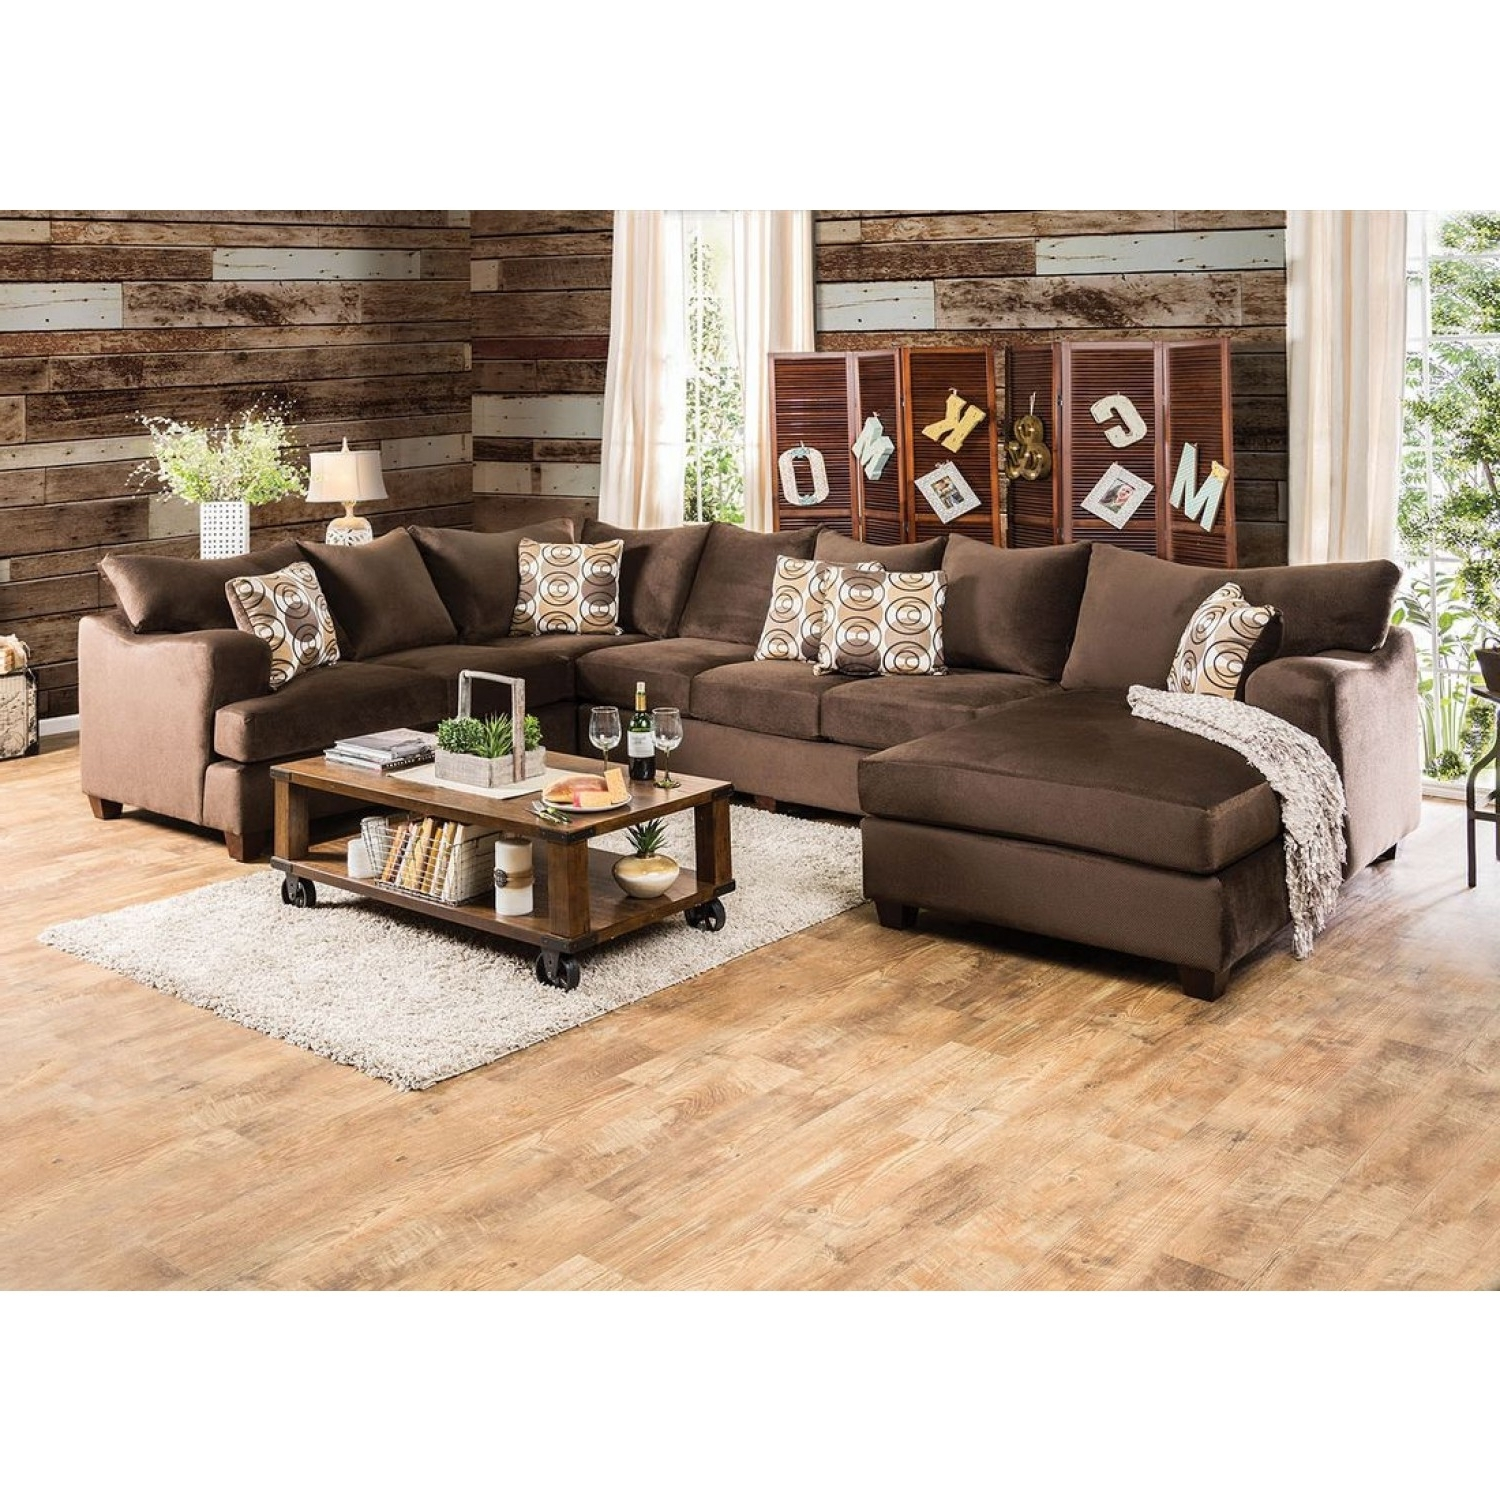 American Freight Sectionals Regarding Sectional Sofas At Birmingham Al (View 11 of 15)